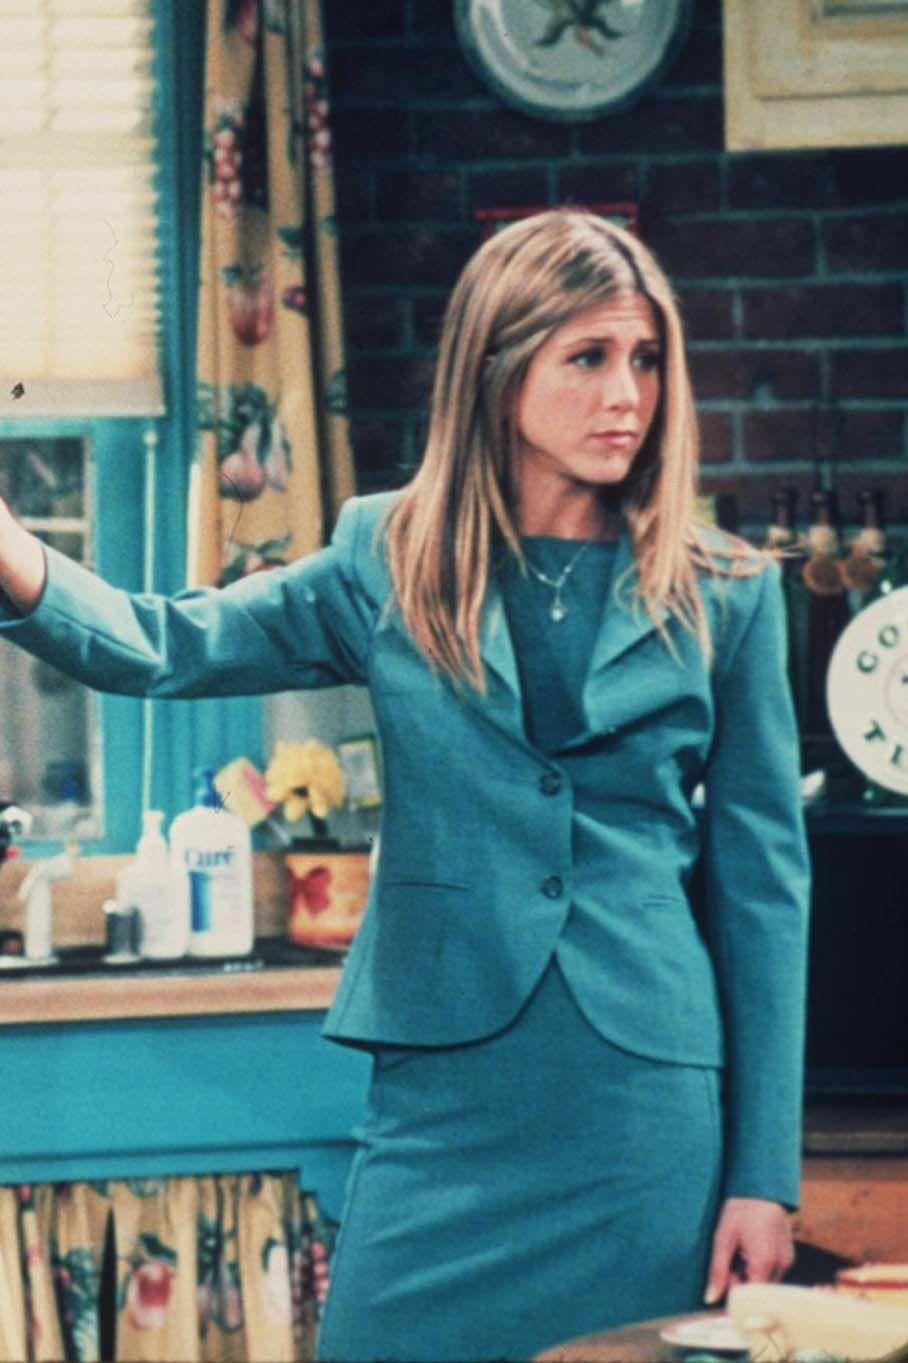 <p>Is there a greater Noughties TV style icon than Rachel Green? We think not. The beloved Friends character, portrayed by the equally beloved Jennifer Aniston, has some killer officewear moments during the 10 seasons, particularly when she is working for Ralph Lauren.</p>